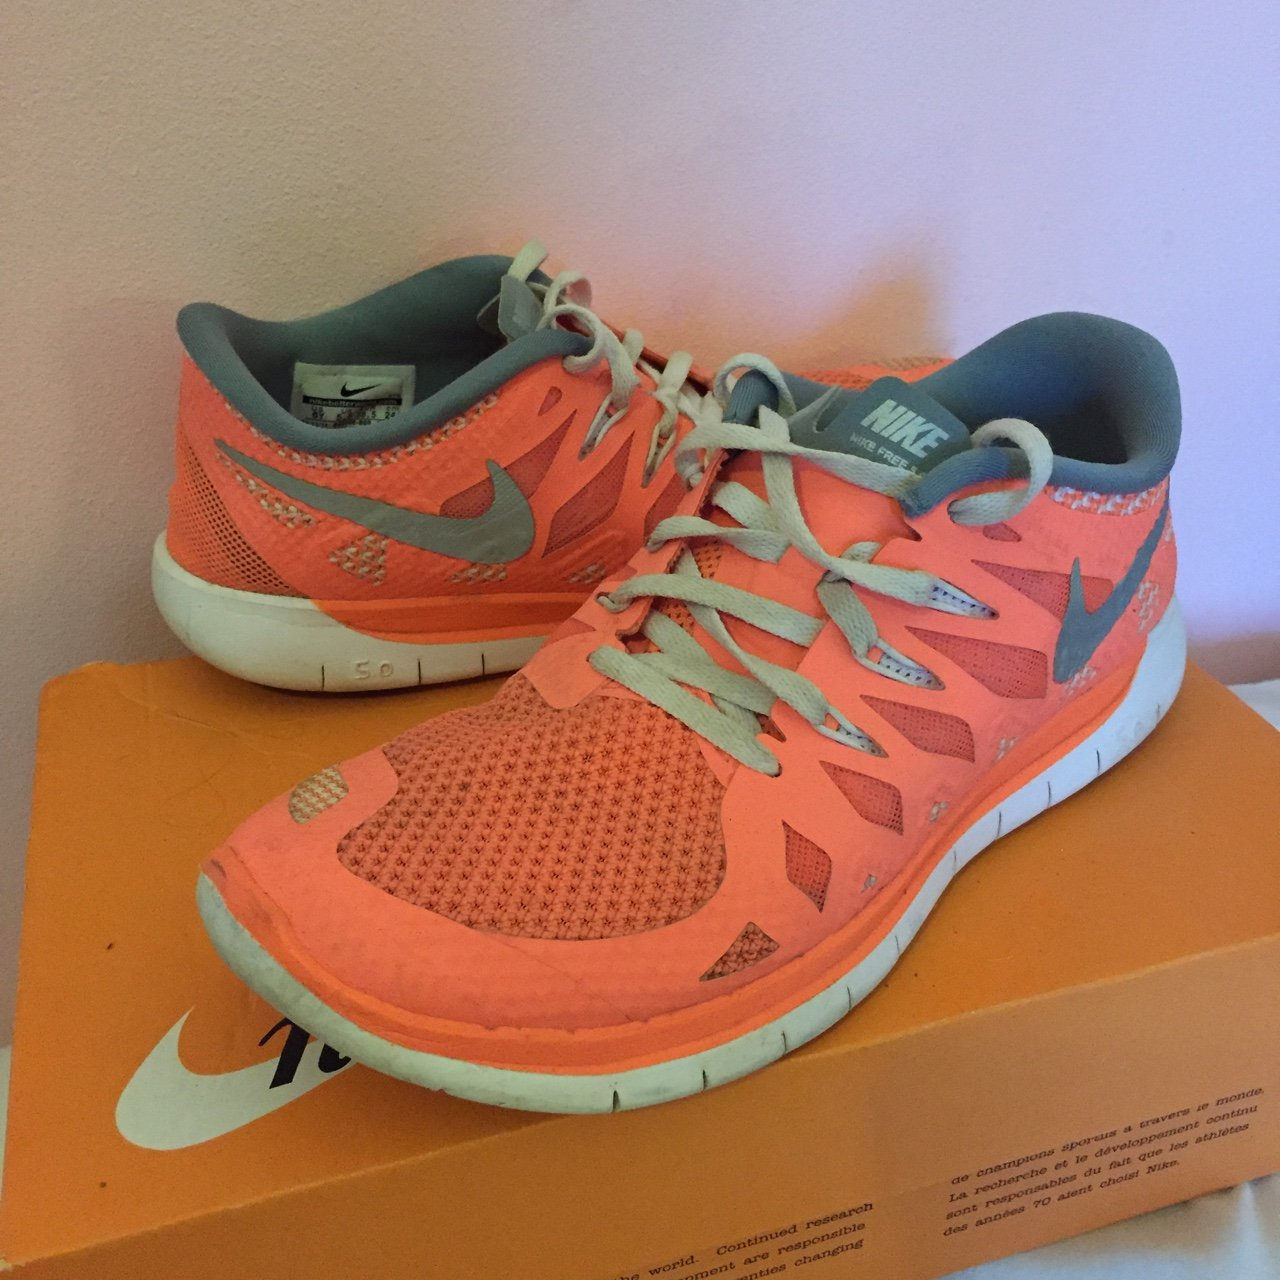 buy popular 804b4 105ae Size 5.5 Nike Free Run 5.0 trainers in a lovely orange coral - Depop